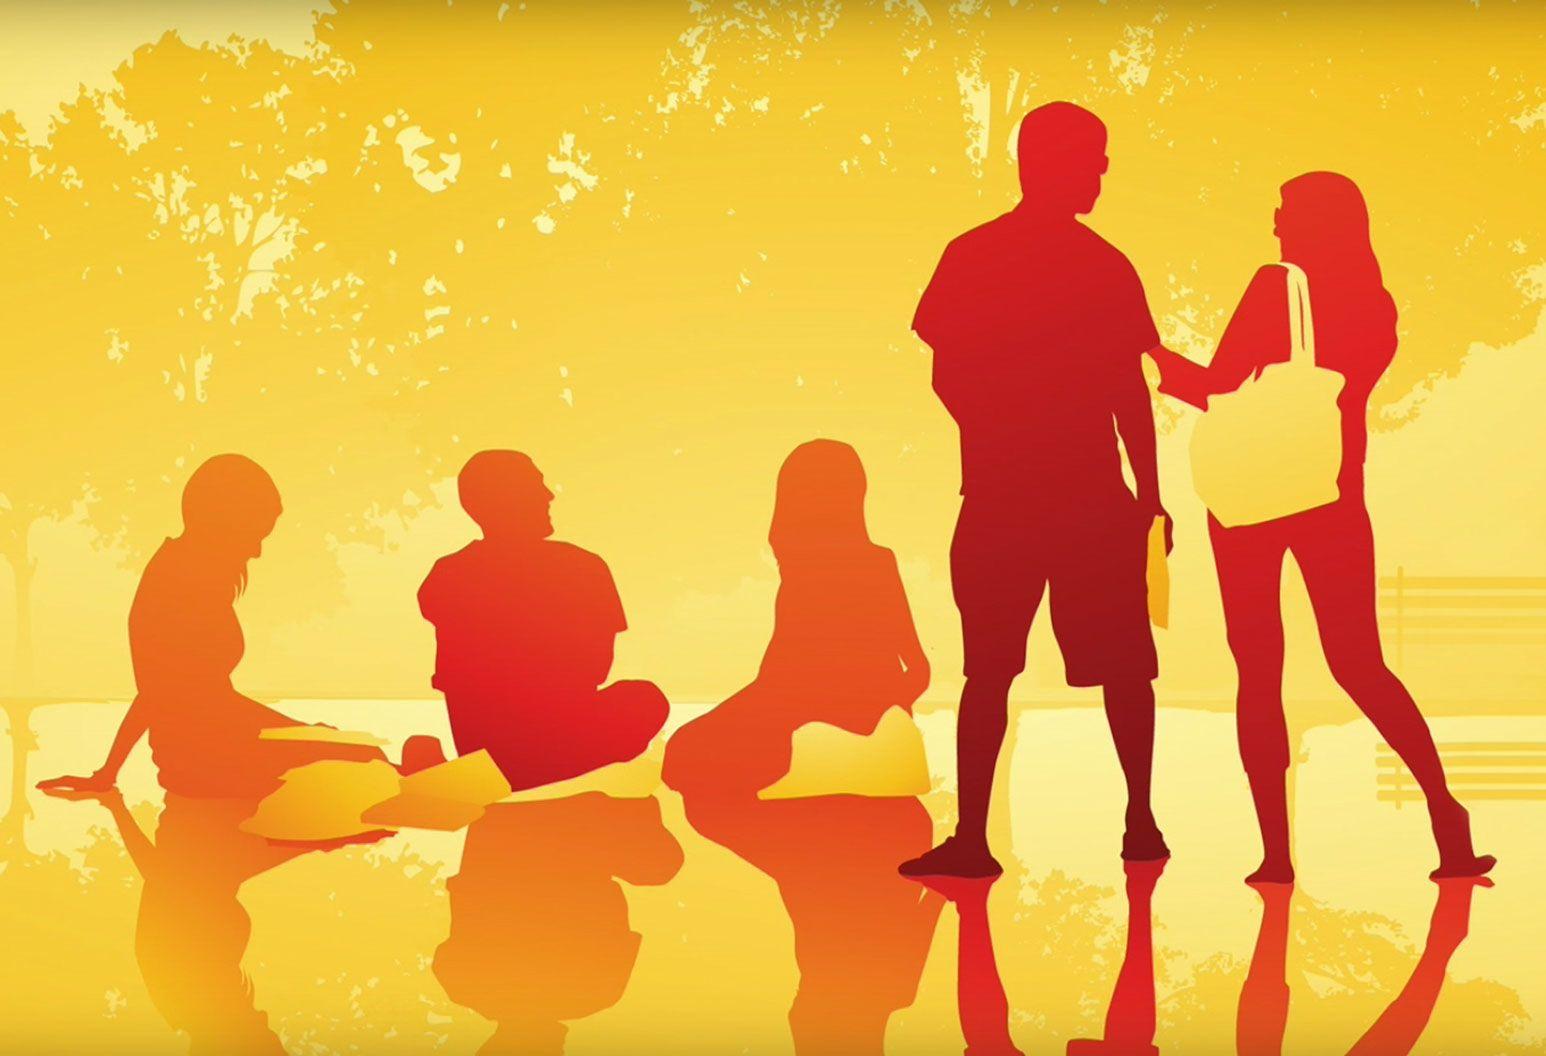 Graphic of young adults sitting and standing in a park. Only their shadows can be seen.